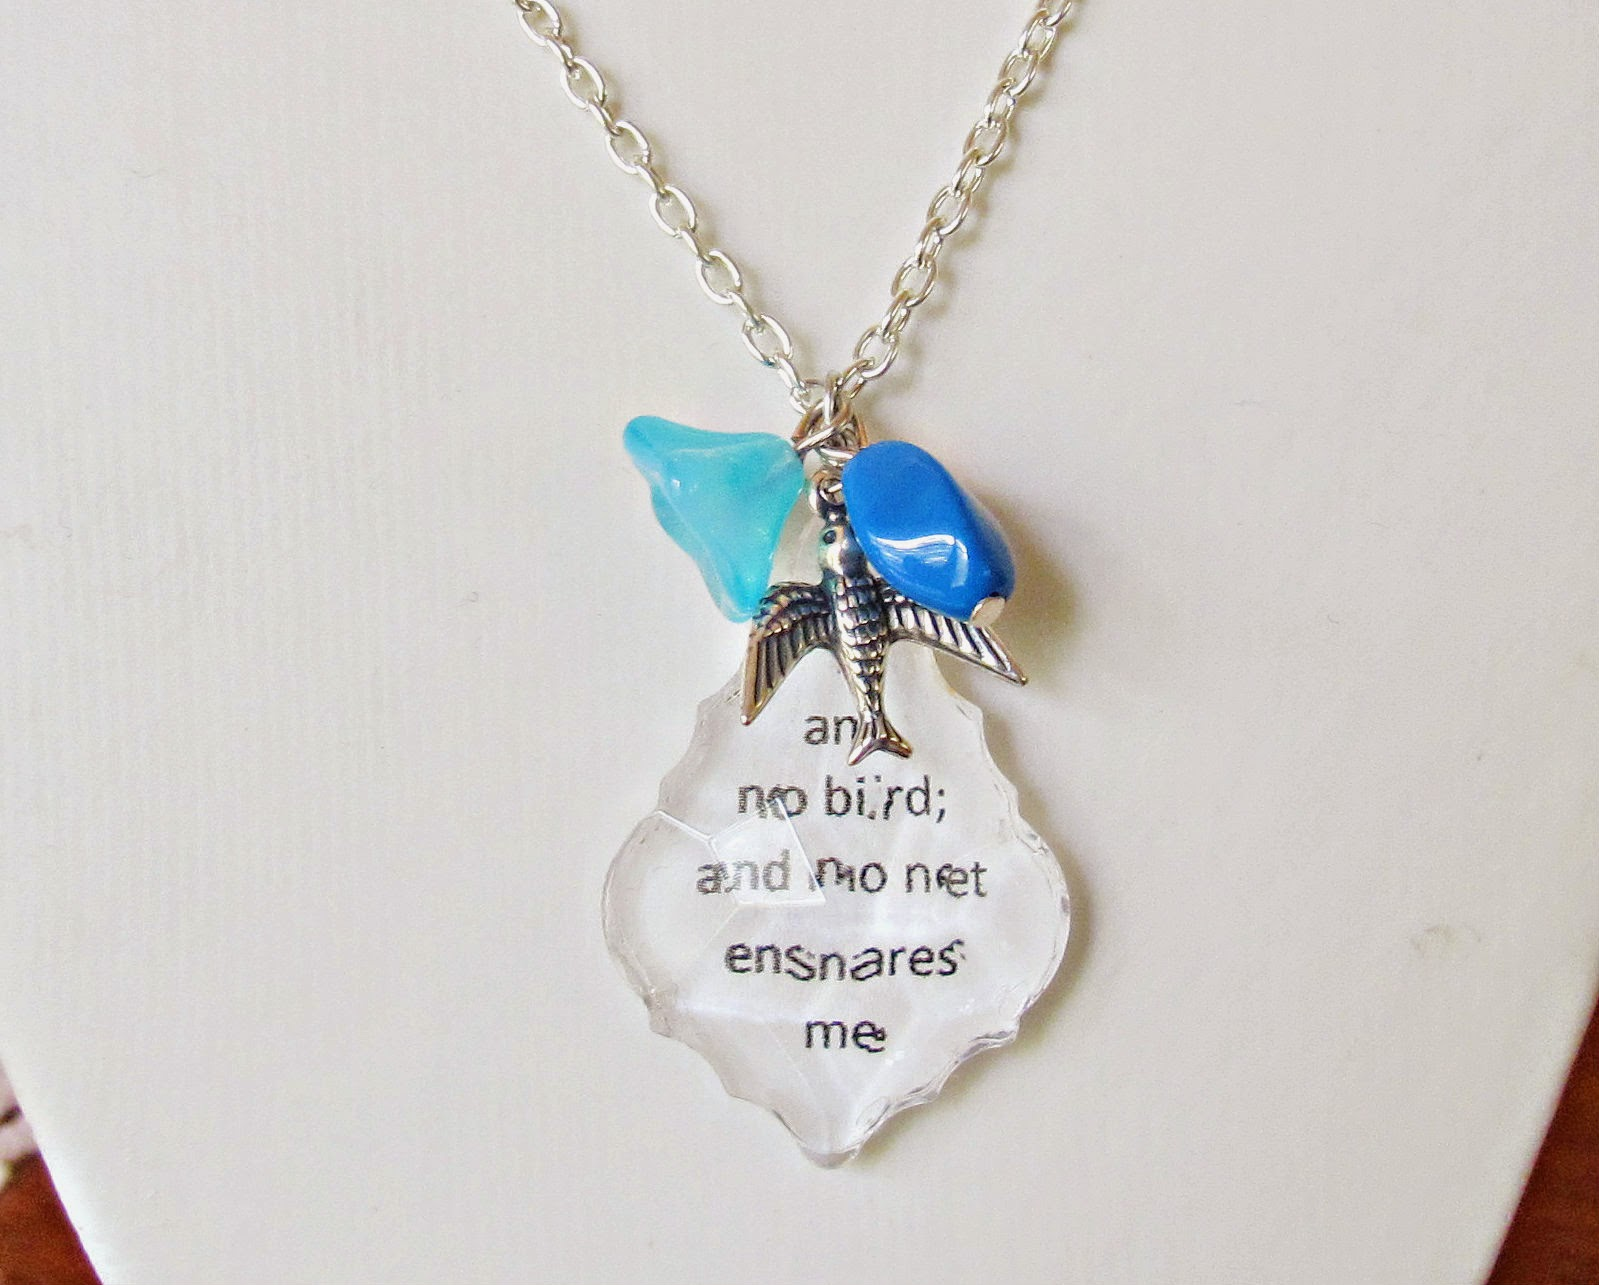 image jane eyre chandelier pendant necklace baroque cut sky blue beads swallow bird i am no bird and no net ensnares me charlotte bronte literature quote silver plated two cheeky monkeys